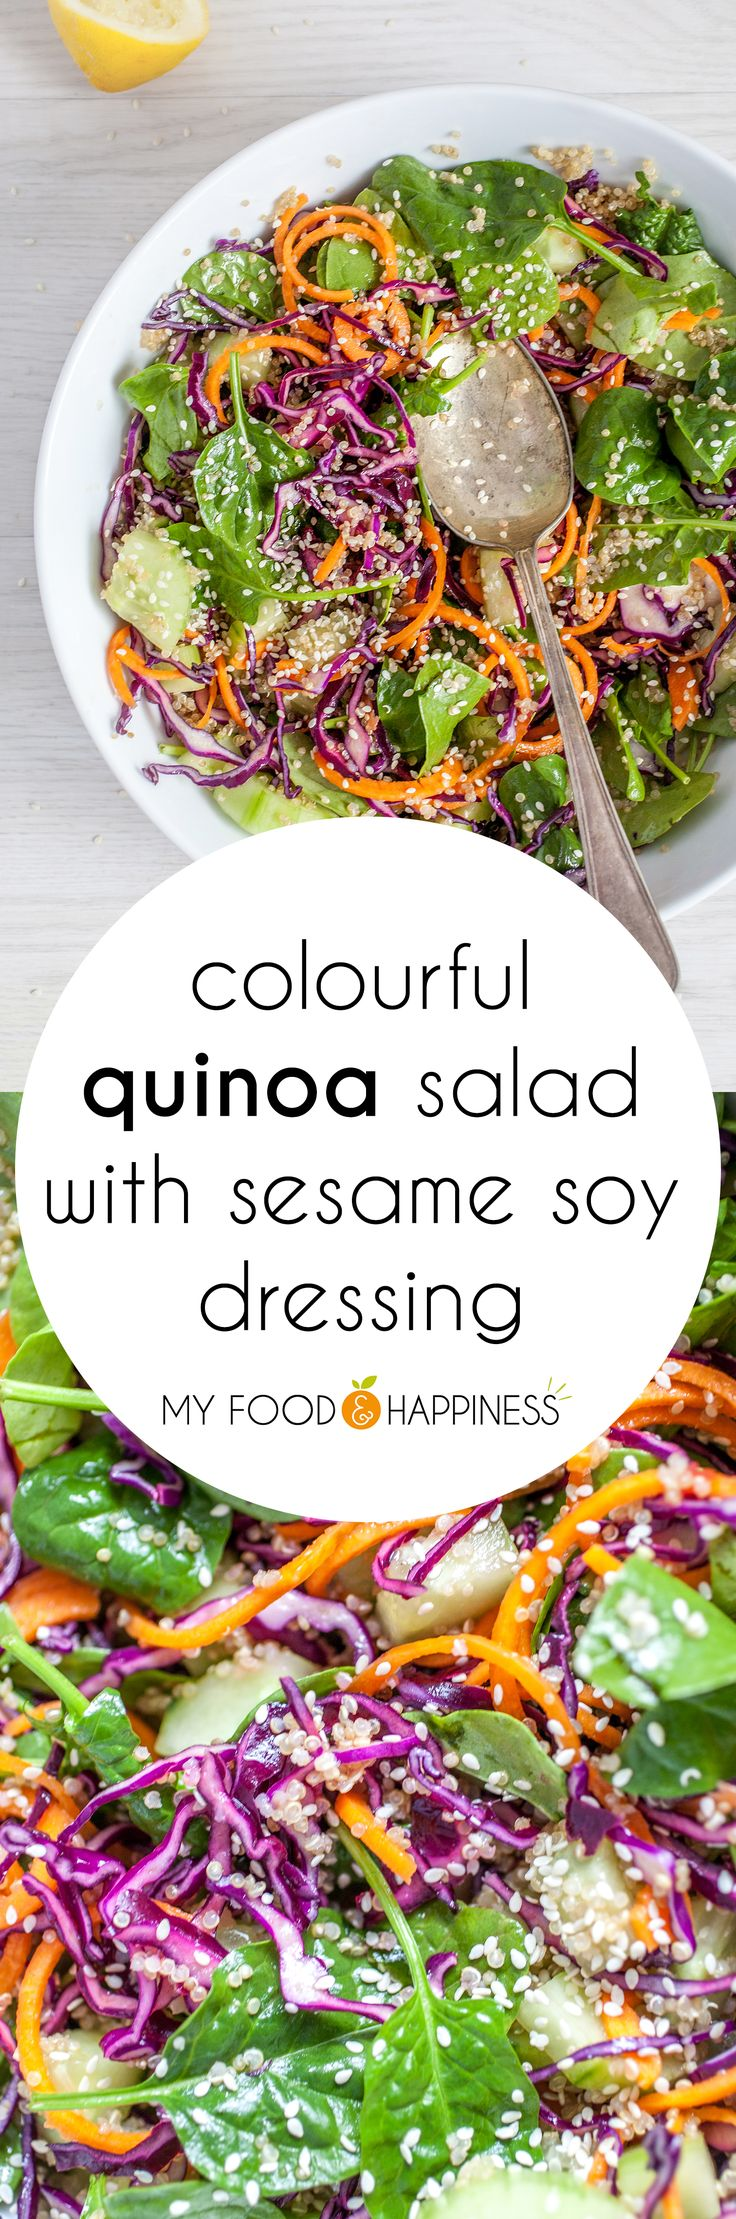 Super flavourful Quinoa salad with Sesame Soy dressing. A nutritious vegan salad with colourful spiralized veggies, protein-rich quinoa, spinach and lots of sesame flavour.